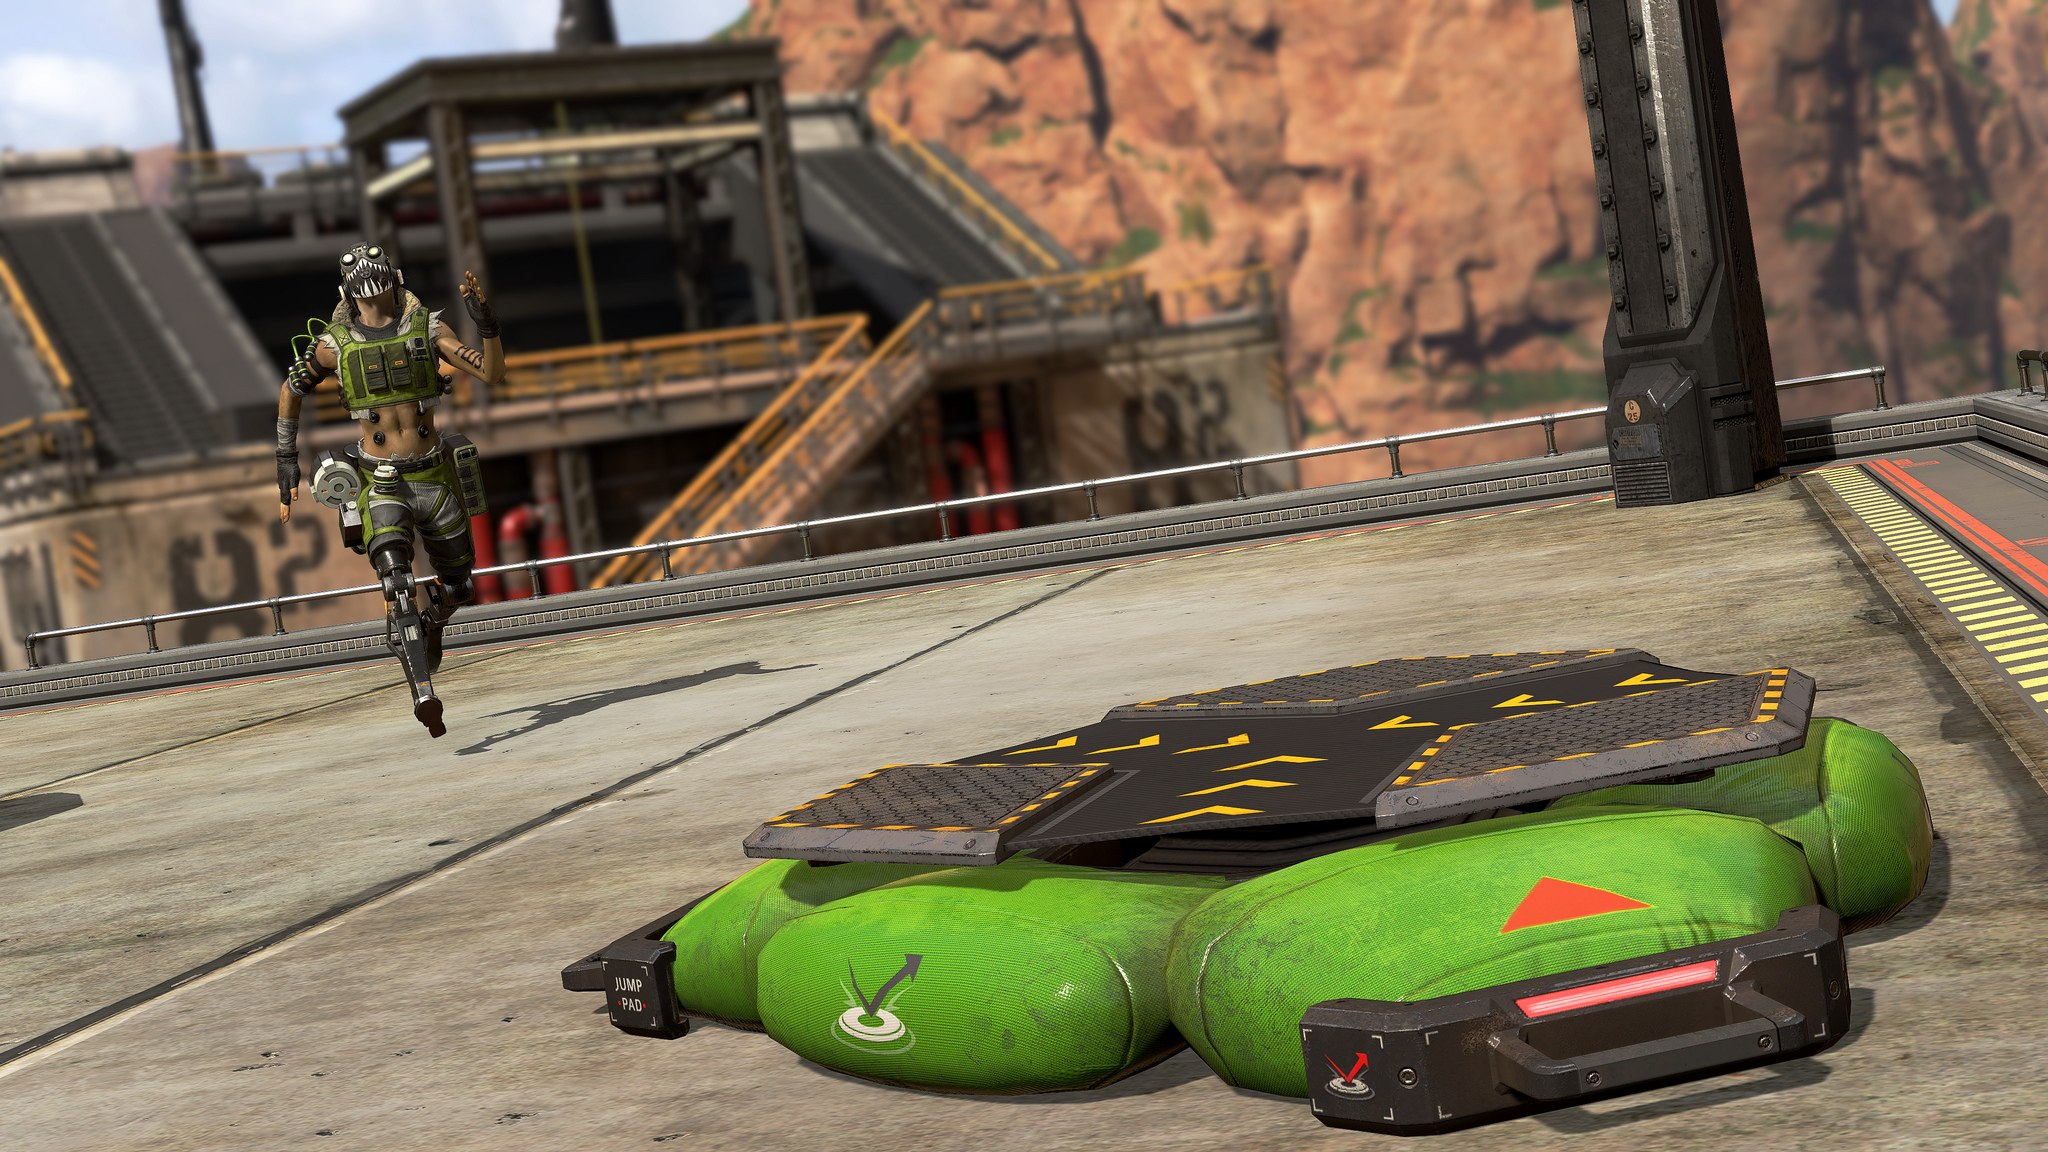 Octane's jump pad lets you launch your team